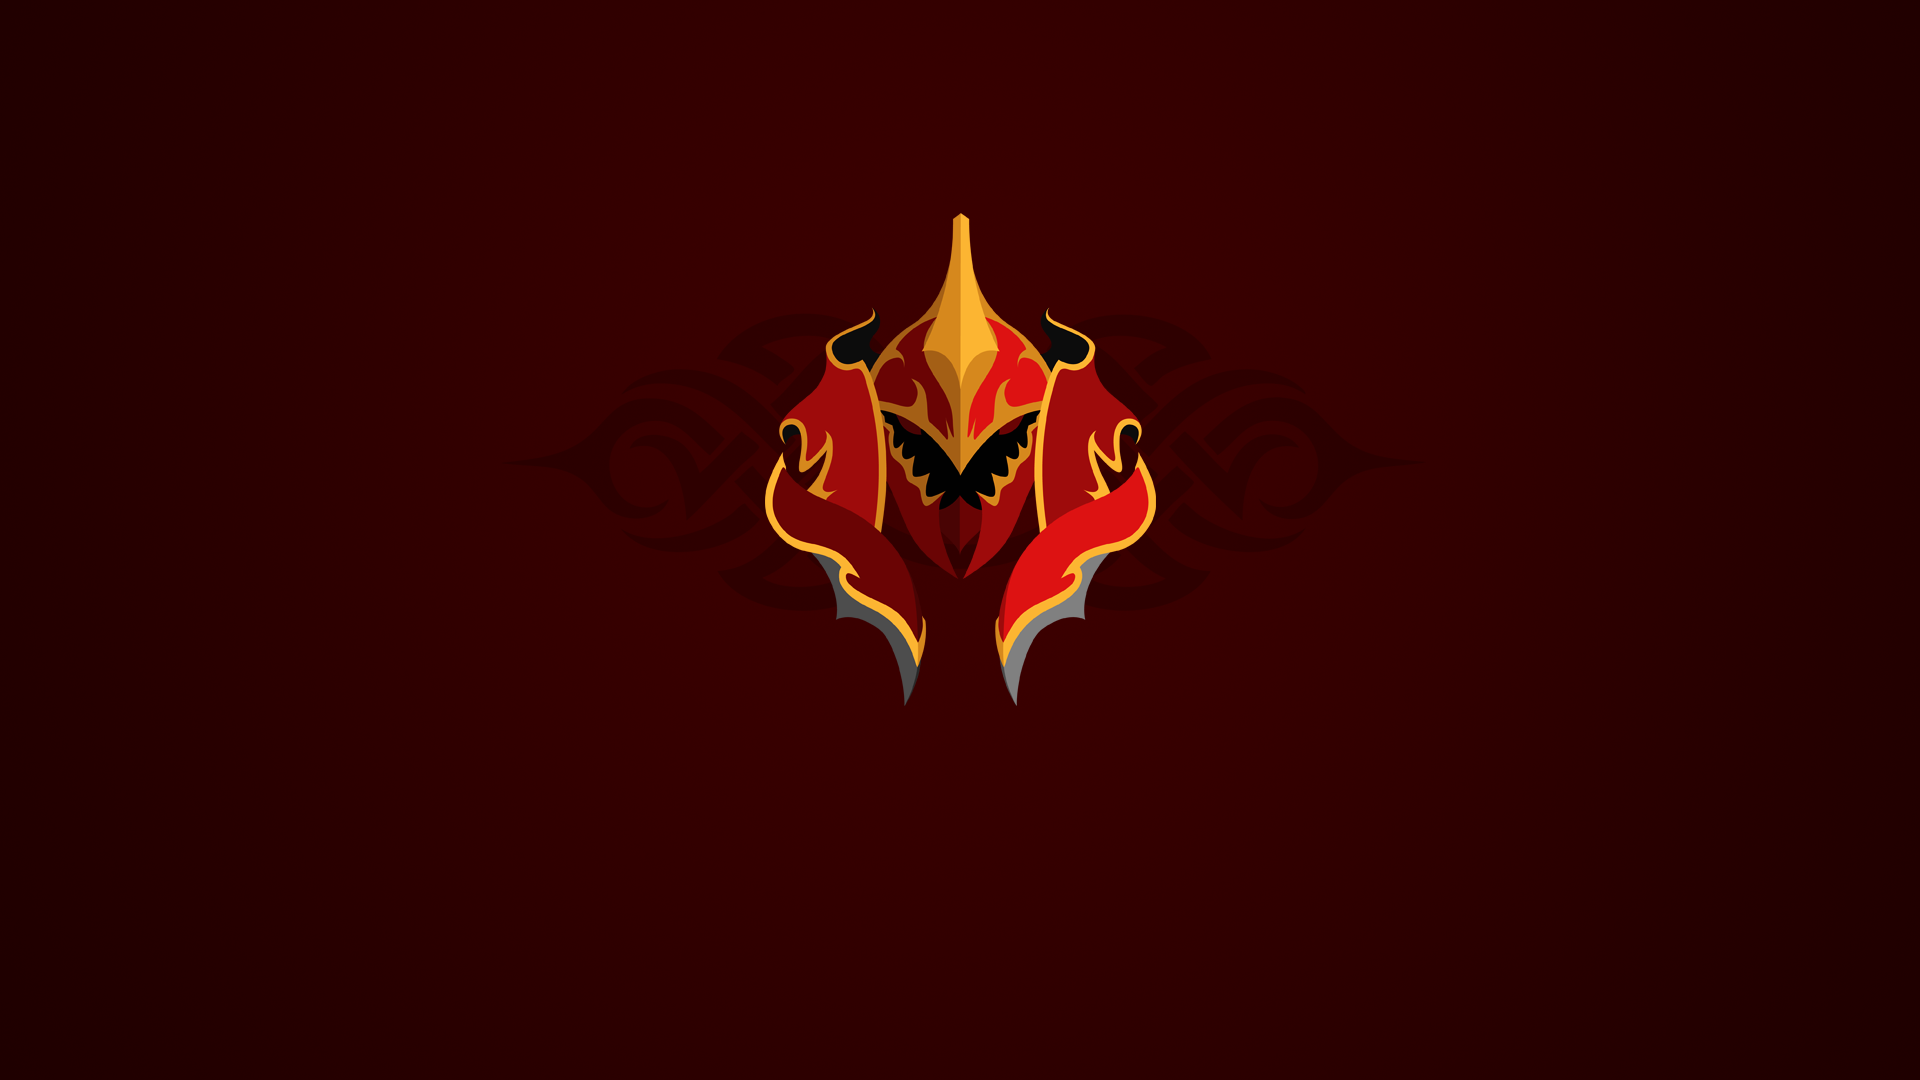 Dota 2 Nyx Assassin Hd Games 4k Wallpapers Images Backgrounds